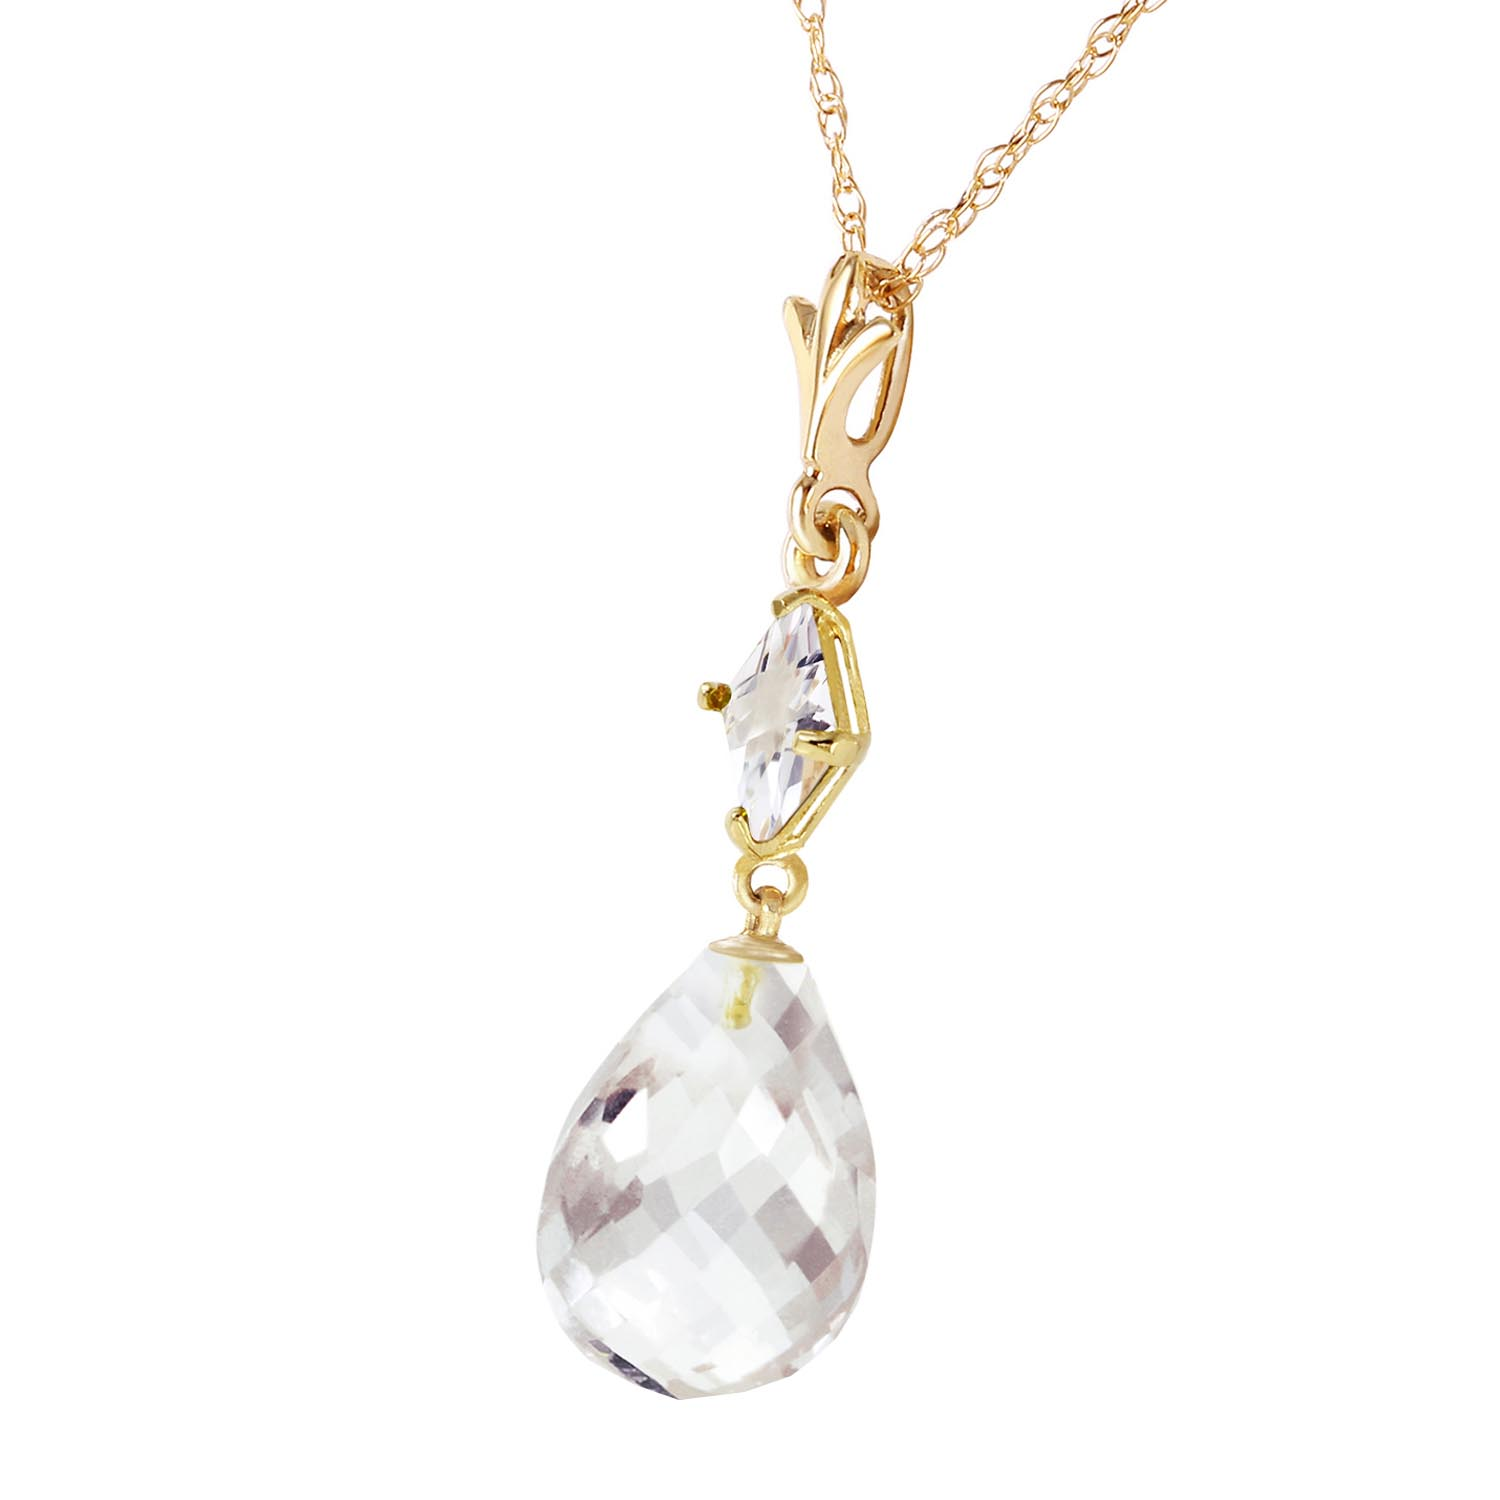 White Topaz Briolette Pendant Necklace 5.5ctw in 14K Gold